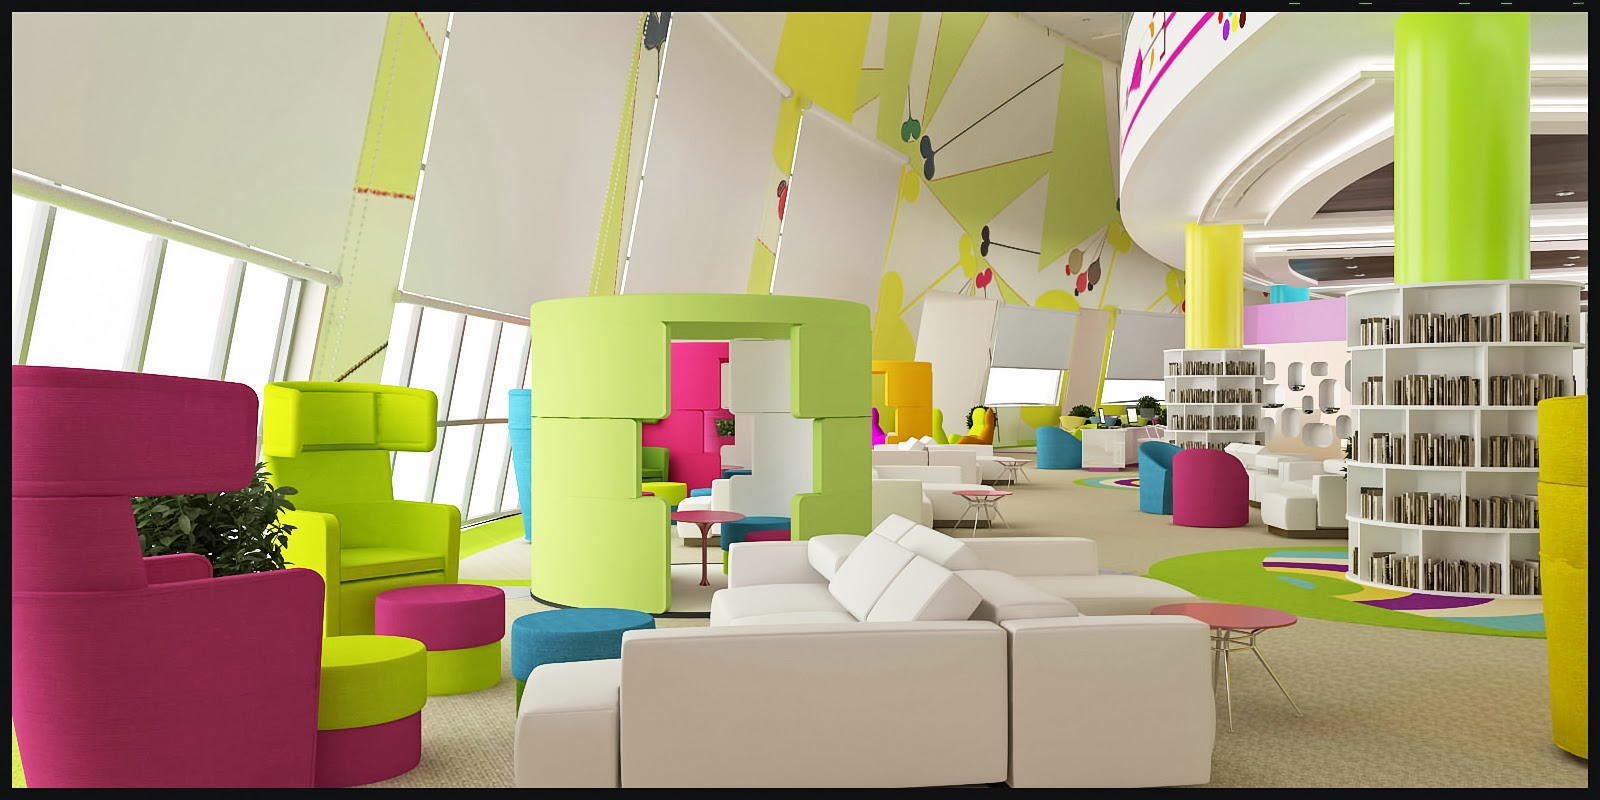 3d visual designs library kids interior 03 for Interior designs for kids